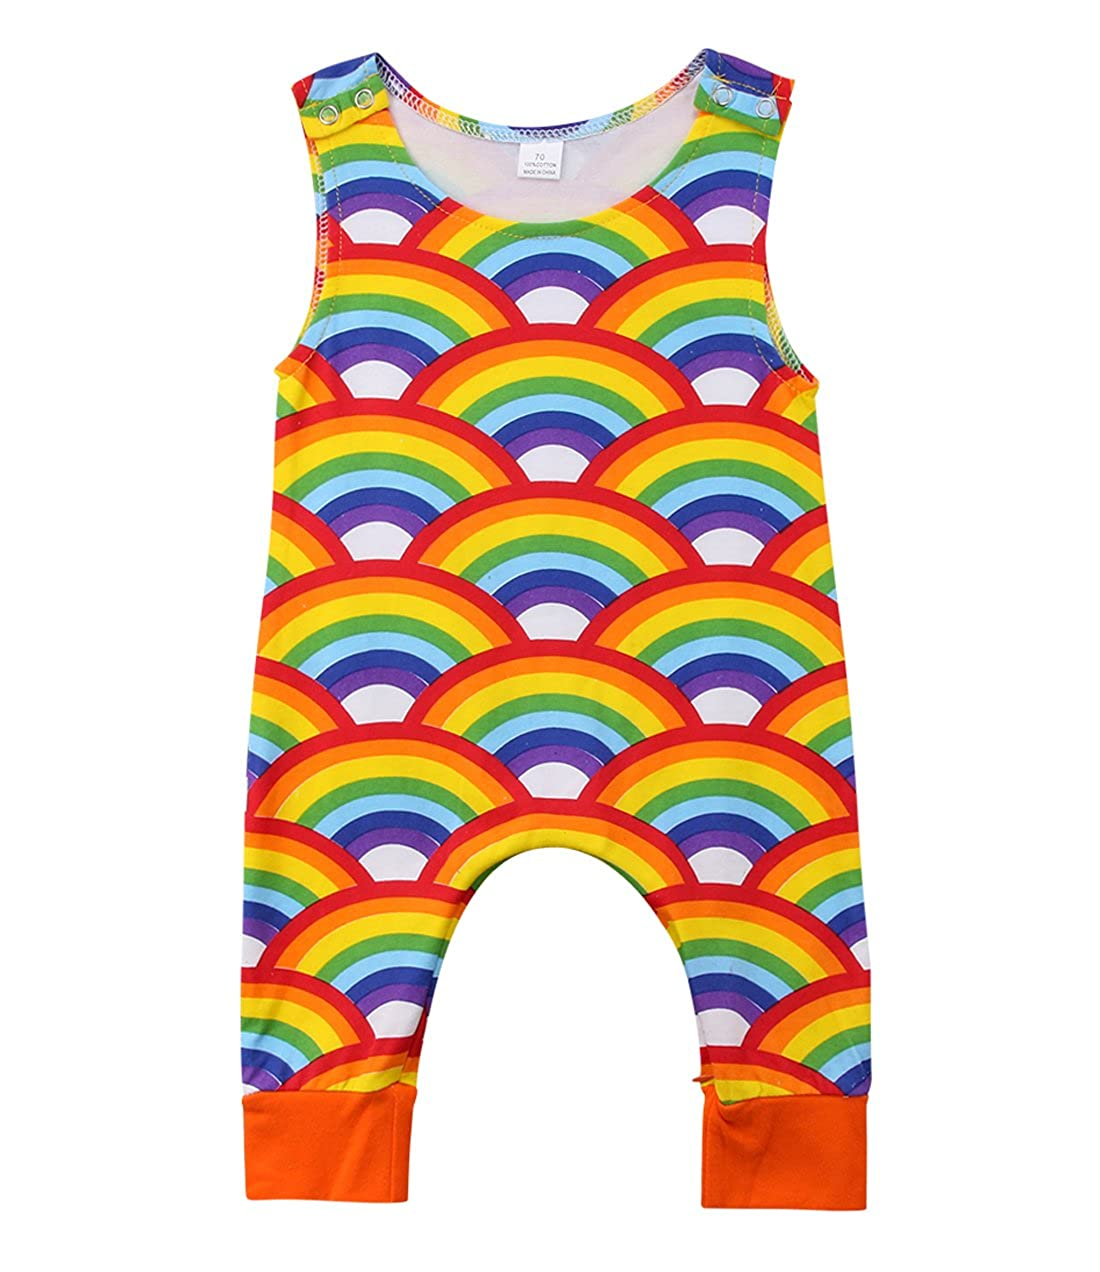 Faithtur Baby Boys Girls Outfit Sleeveless Rainbow Romper Bodysuit with Zipper